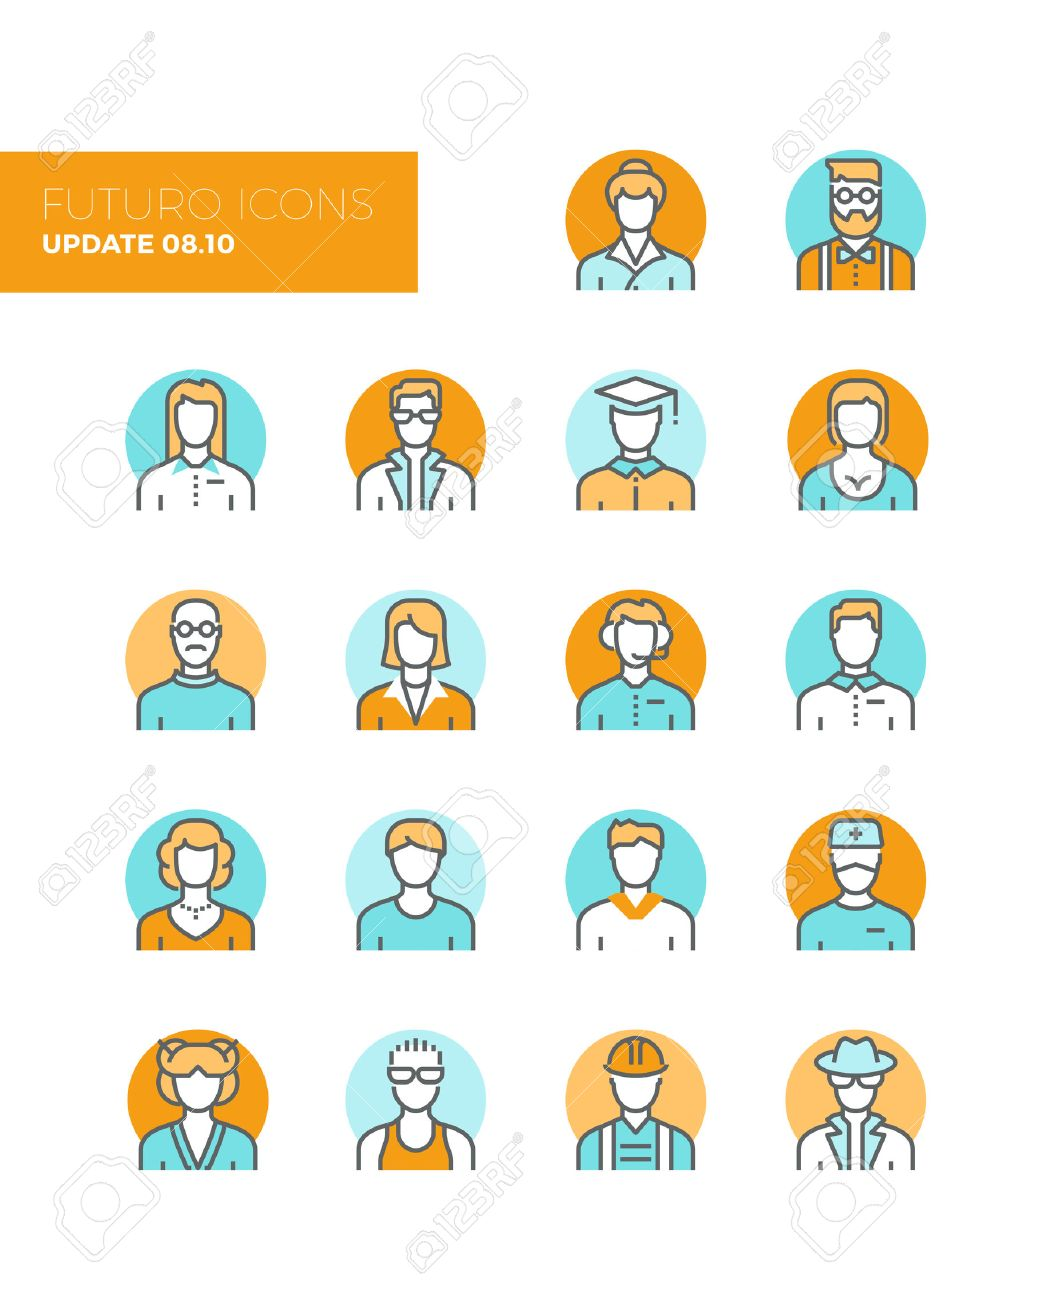 Line icons with flat design elements of people avatars profession, professional human occupation, basic characters set, employee variety. Modern infographic vector icon pictogram collection concept. Stock Vector - 43582056